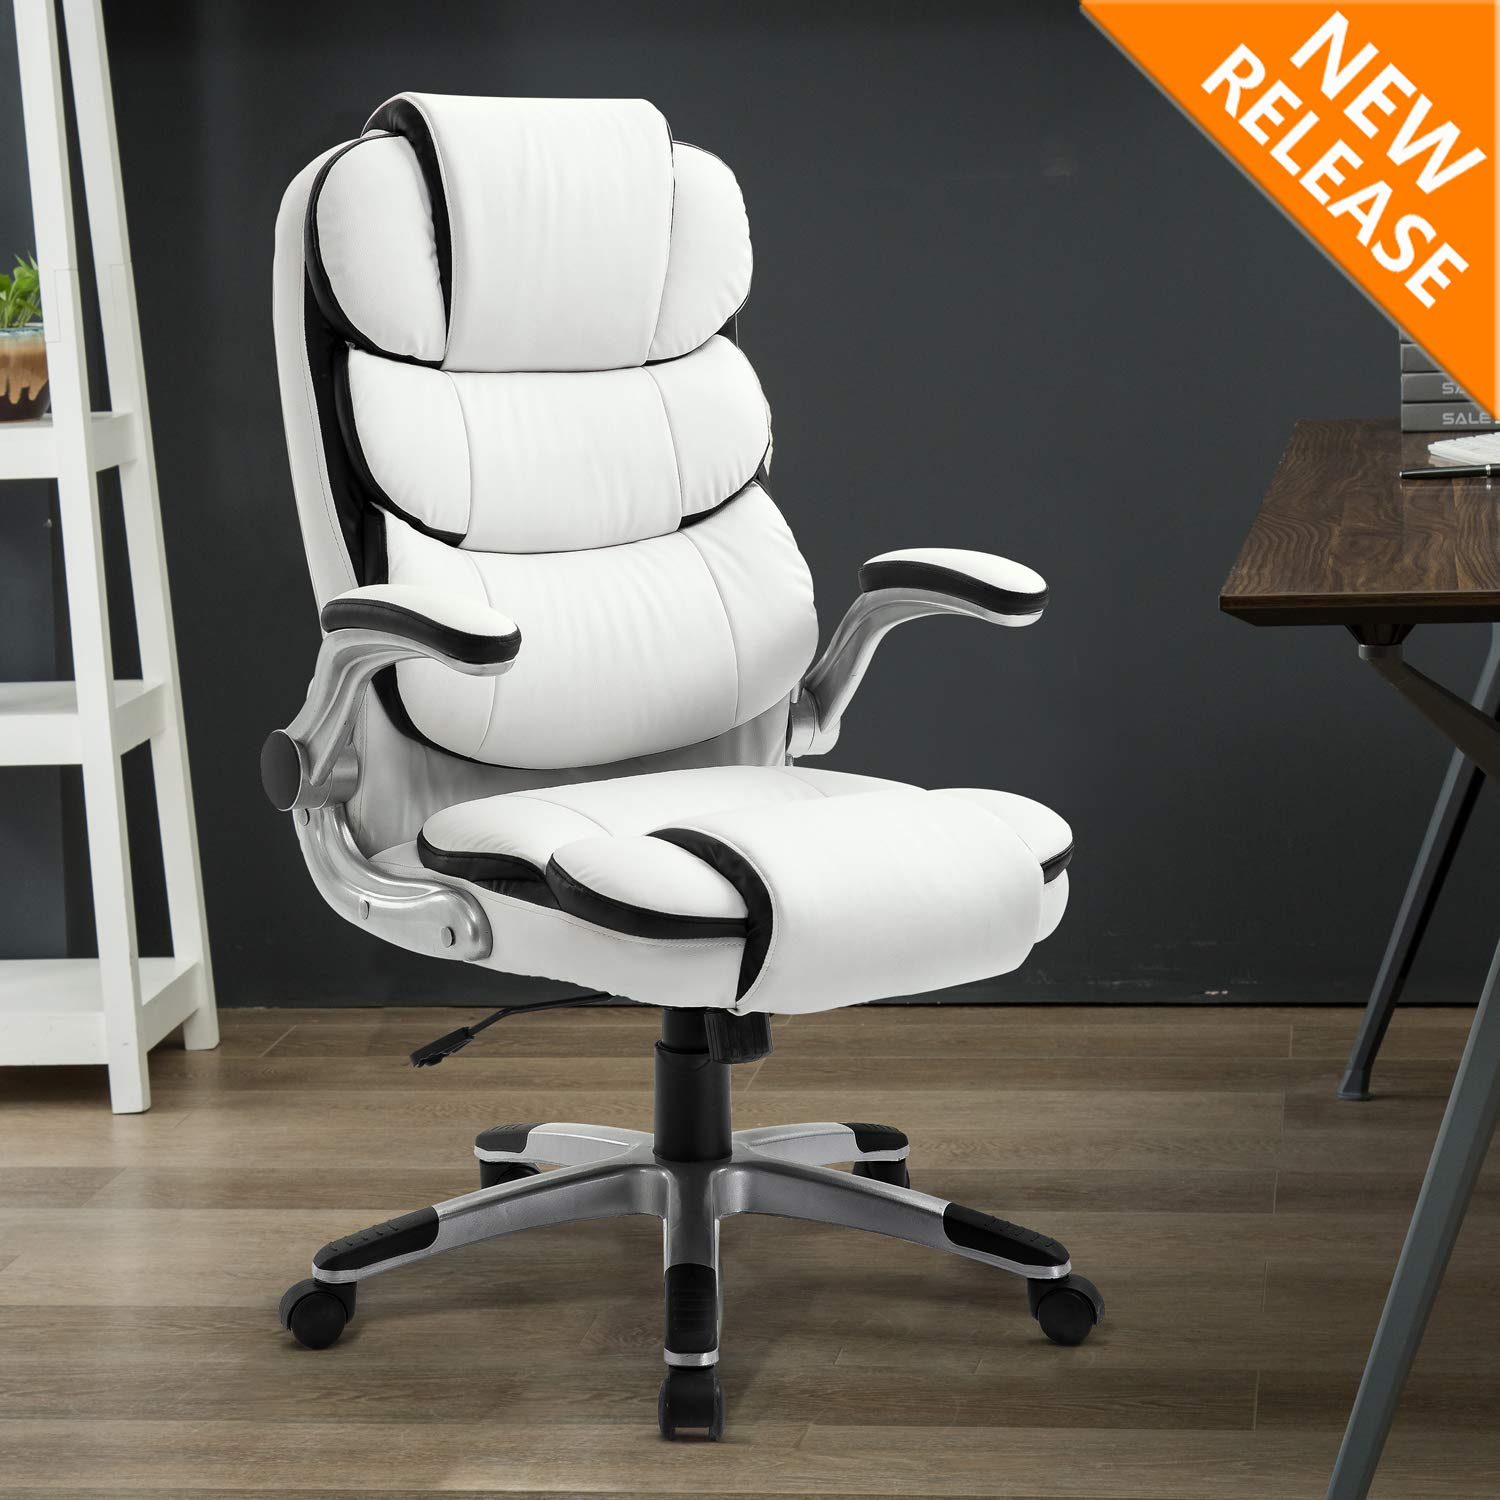 Excellent Yamasoro Heavy Duty White Office Chair Desk Chair Stylish High Back Computer Chair With Adjustable Arms And Back Support For Heavy People Squirreltailoven Fun Painted Chair Ideas Images Squirreltailovenorg